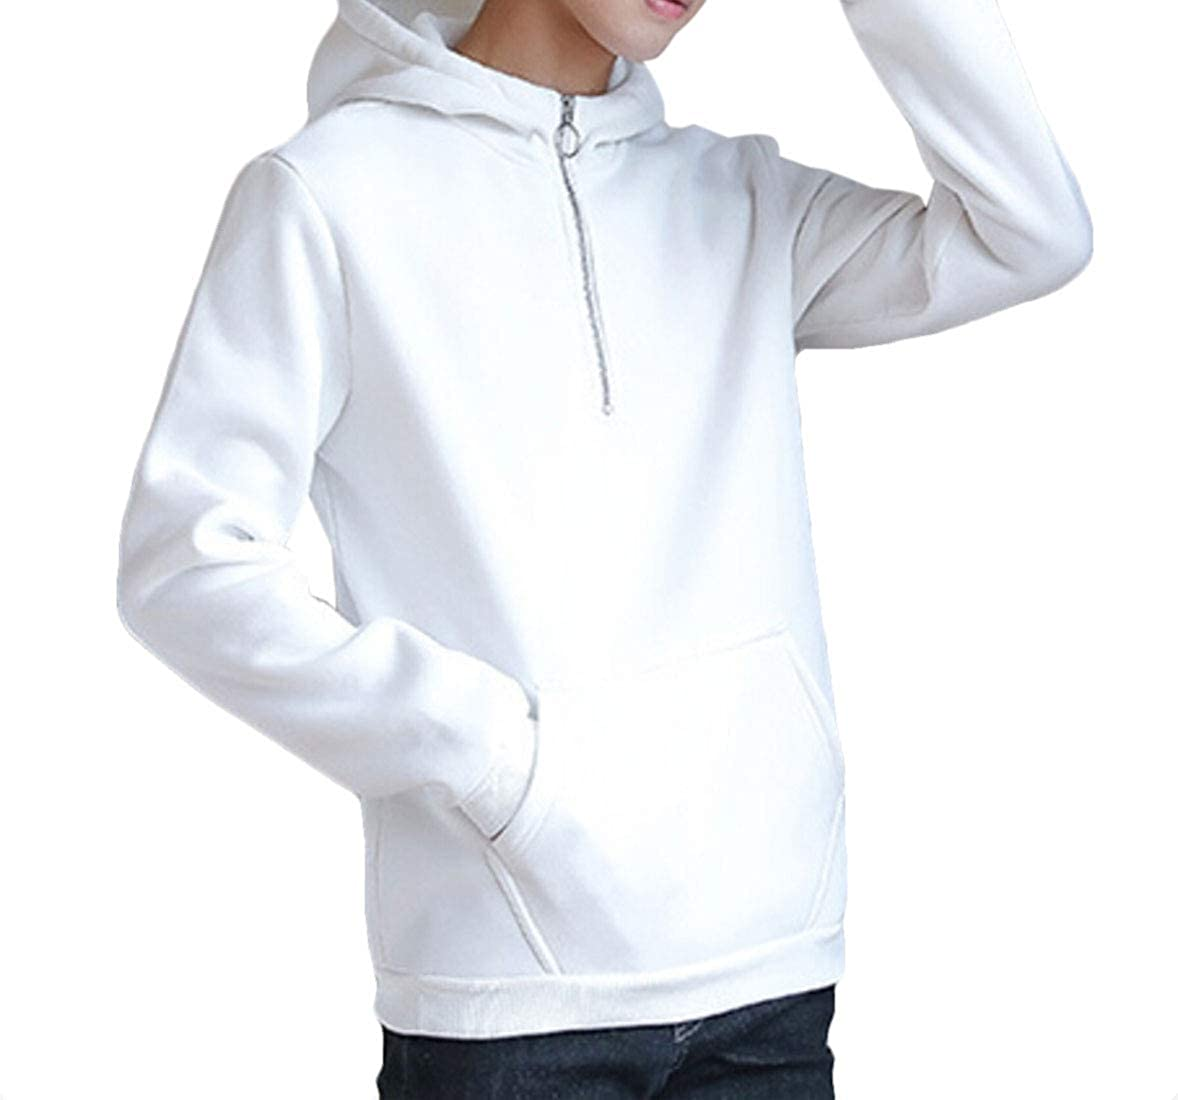 omniscient Mens Quarter Zip Hooded Sweatshirt Lightweight Windbreaker Pullover Jacket